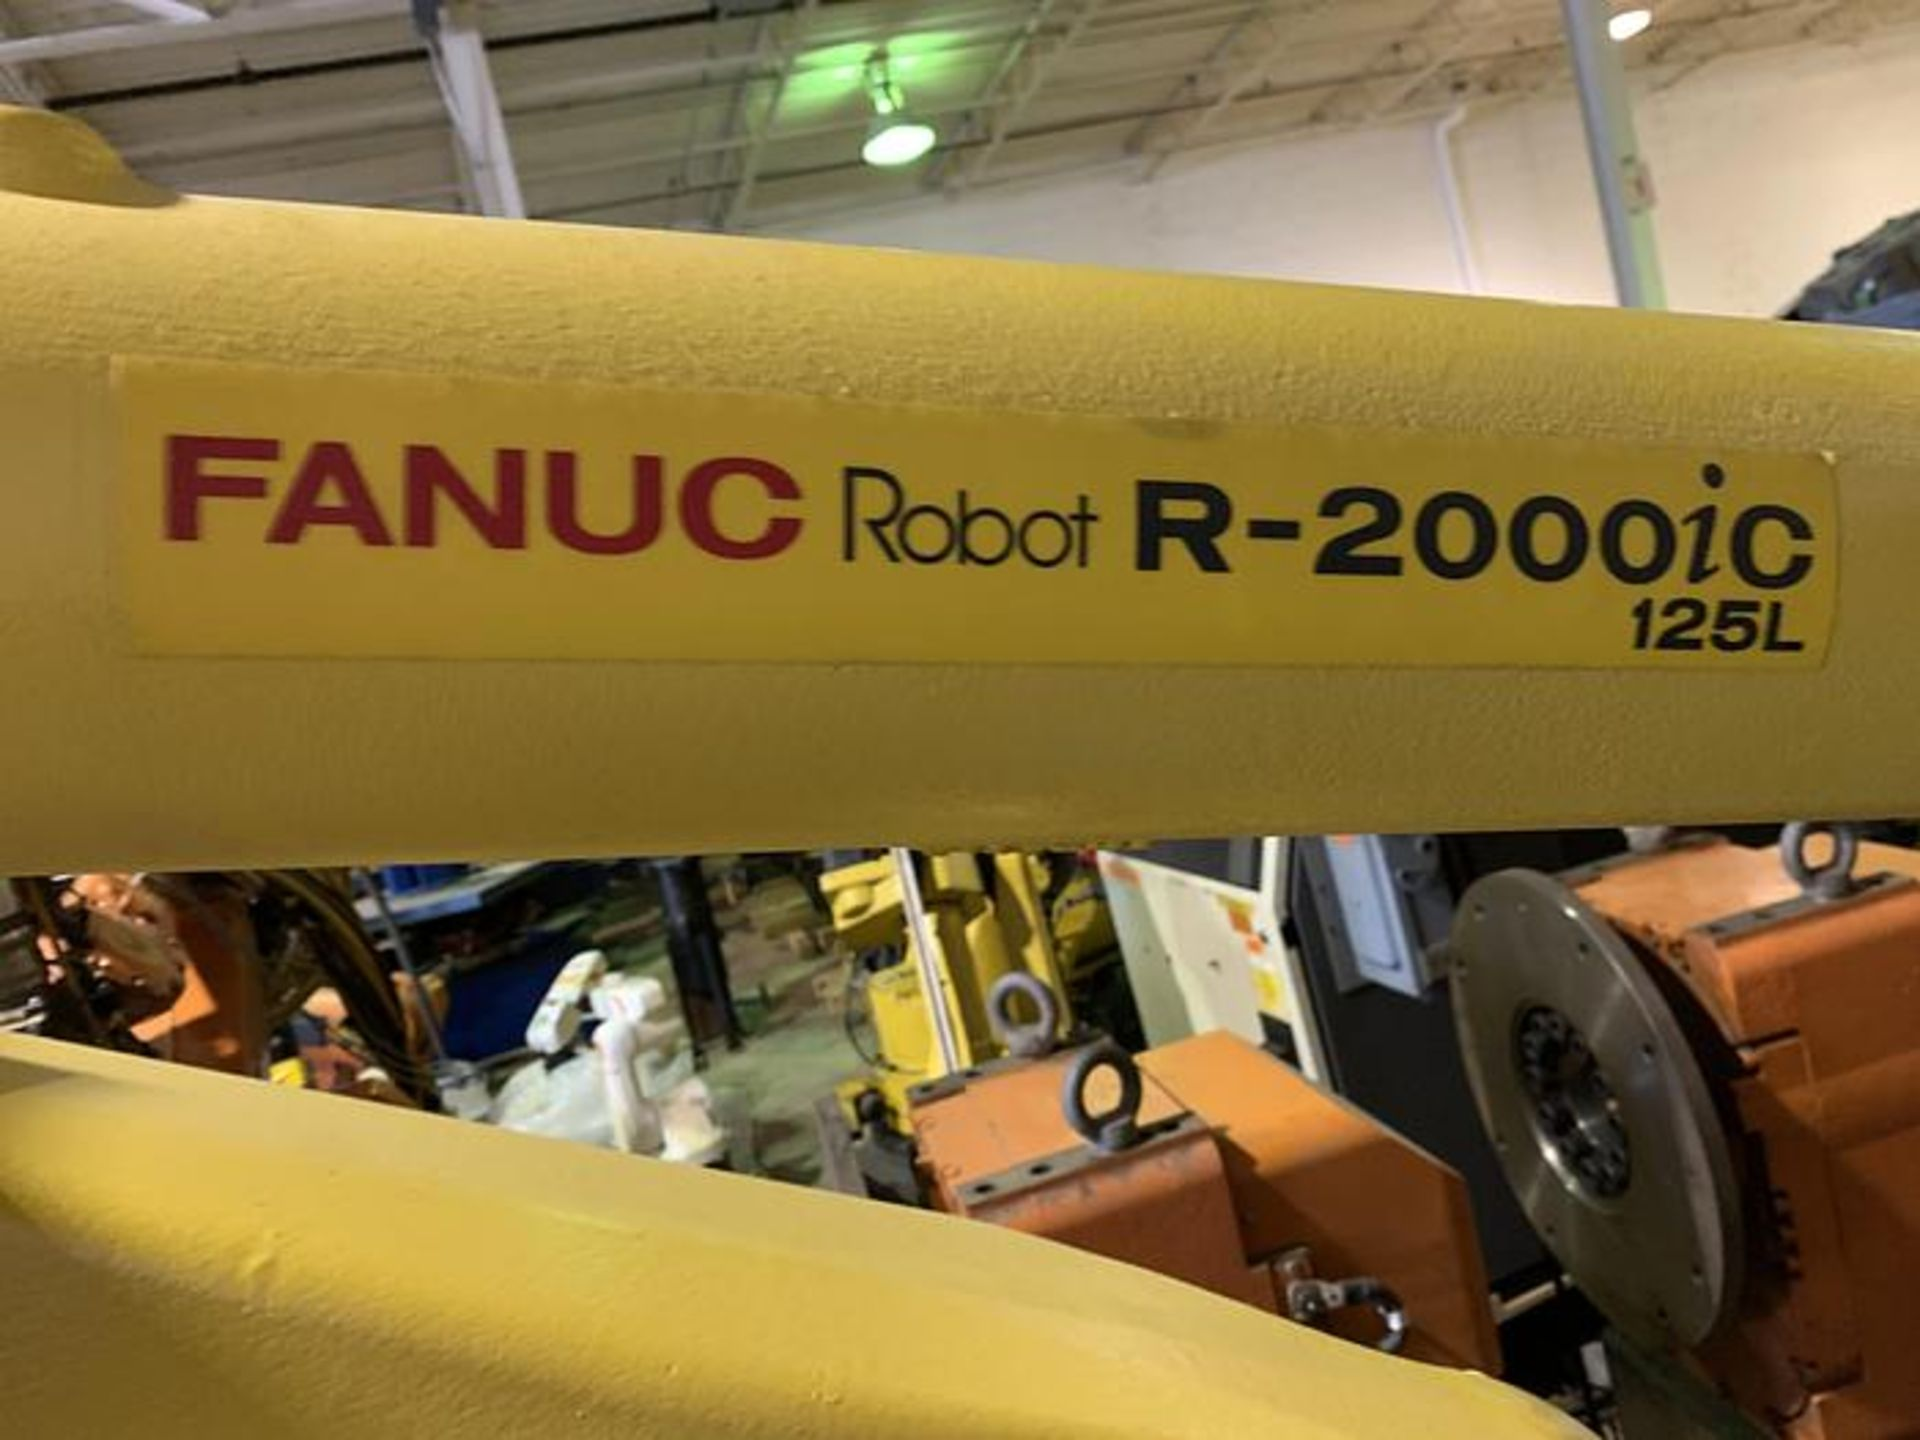 FANUC R2000iC/125L 6 AXIS CNC ROBOT WITH R30iB CONTROLLER, IR VISION, CABLES & REACH - Image 3 of 17